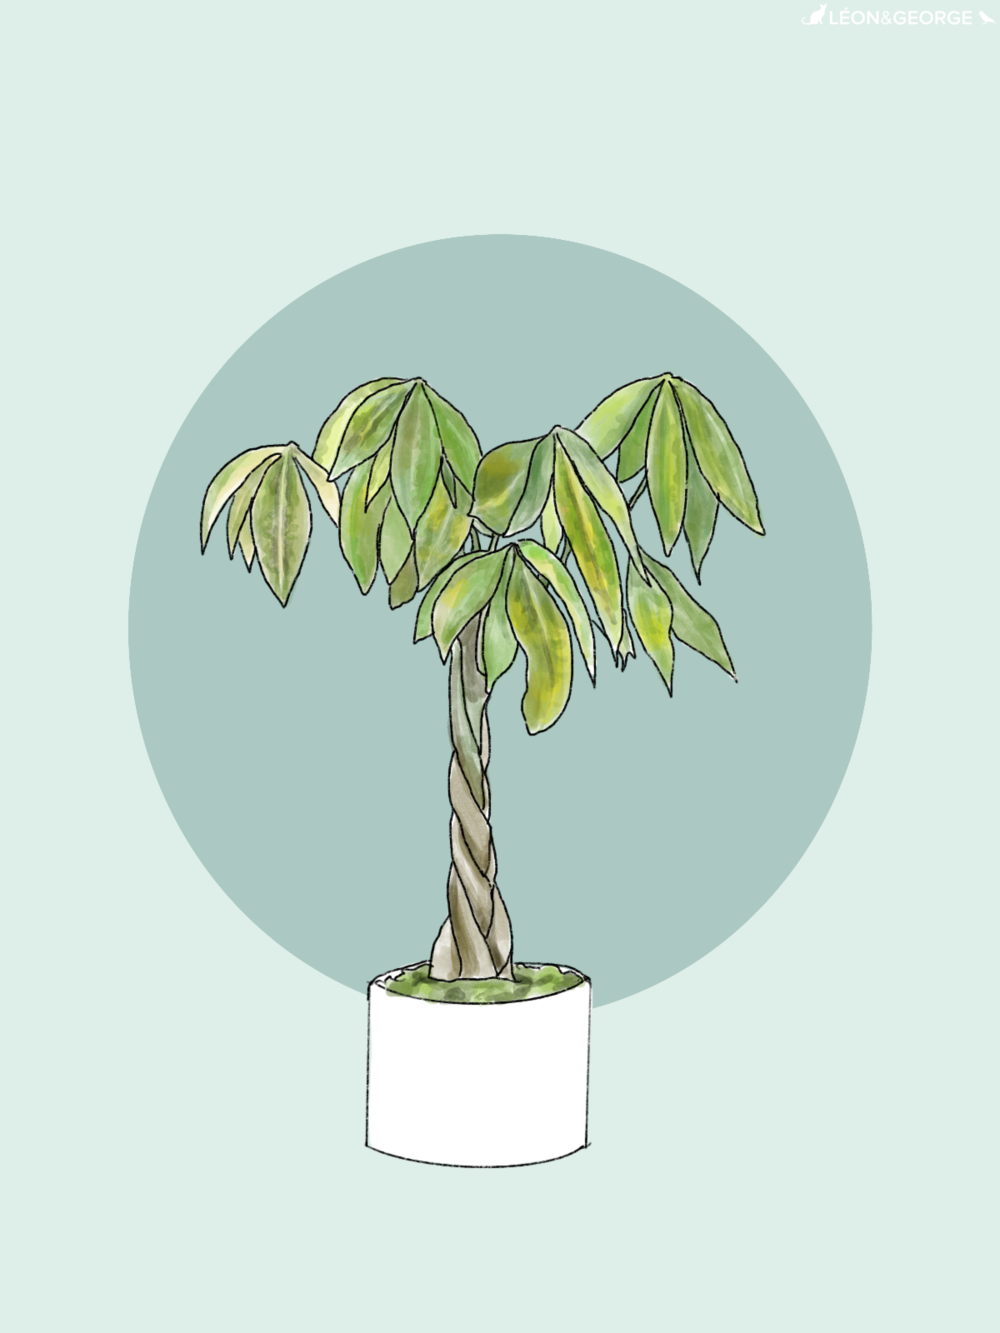 How To Care For And Grow Your Braided Money Tree La Residence Plant Care Tips And More Braided Care Gr Money Trees Money Tree Plant Care Money Tree Plant